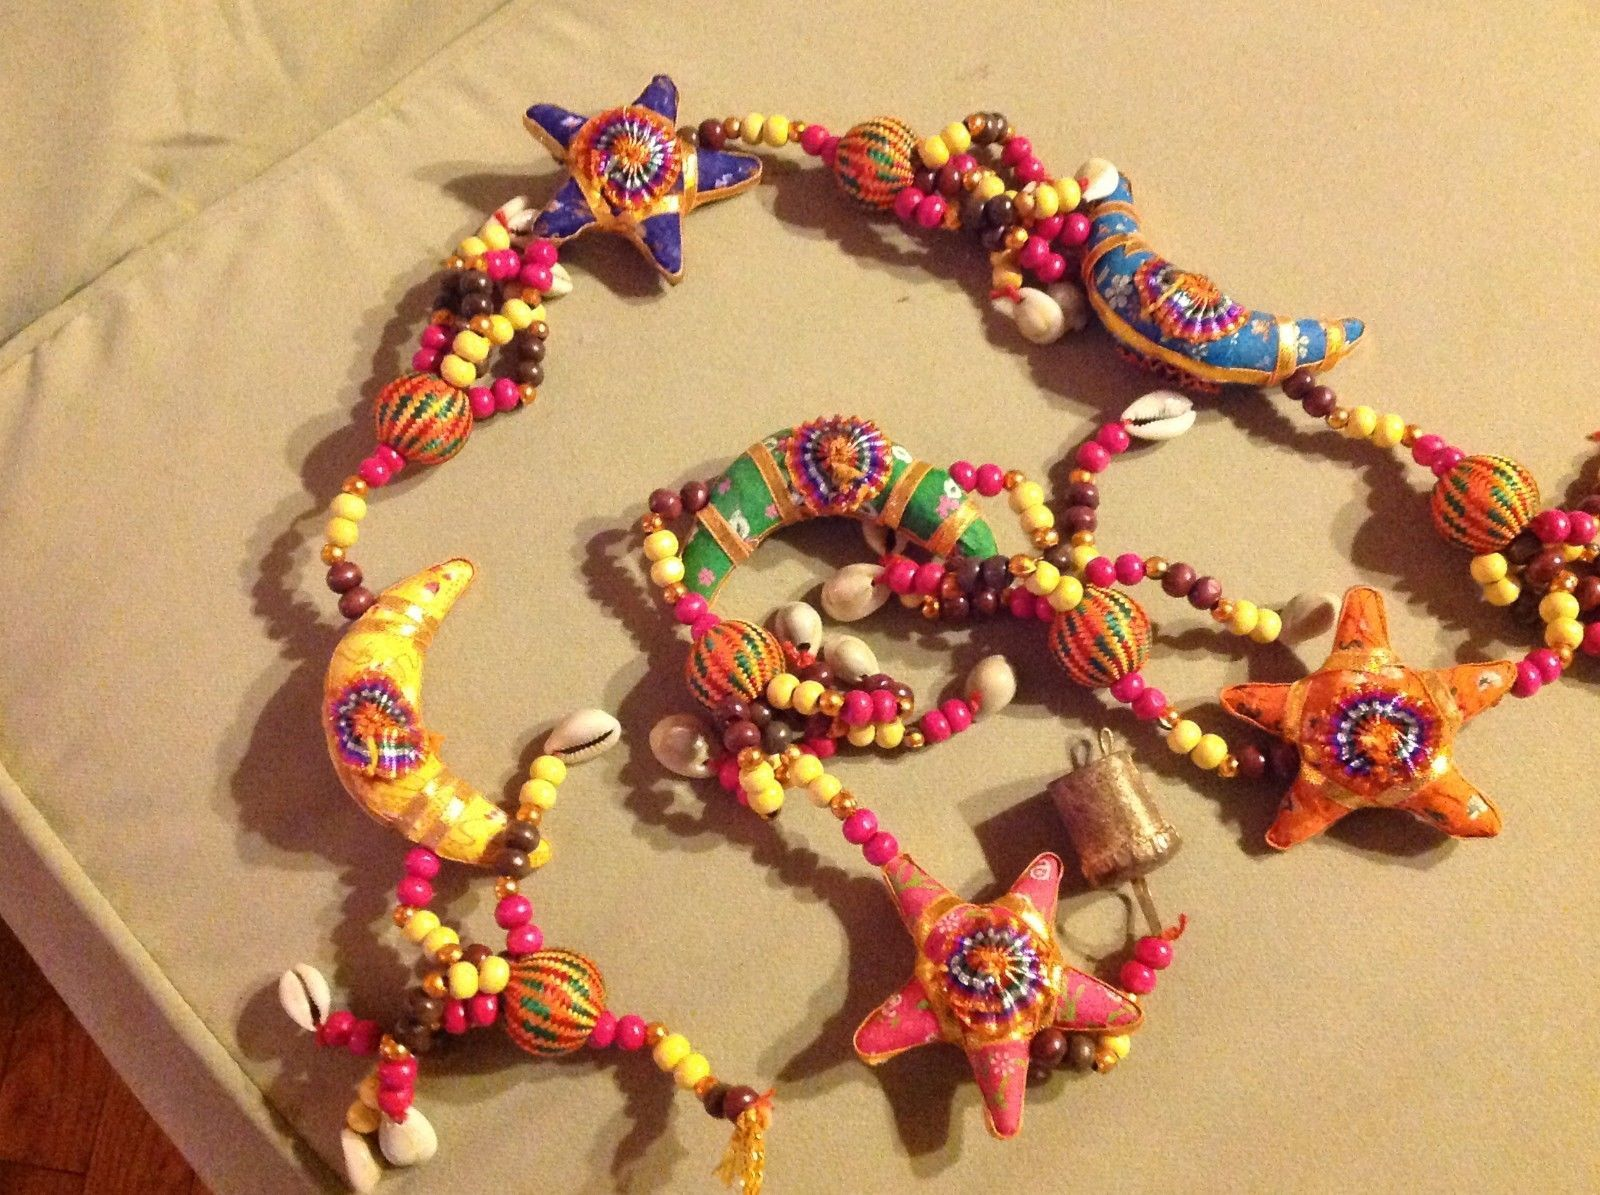 Large Festival Crescent Moon Stars Strand w Beads and Bell String Connector image 2